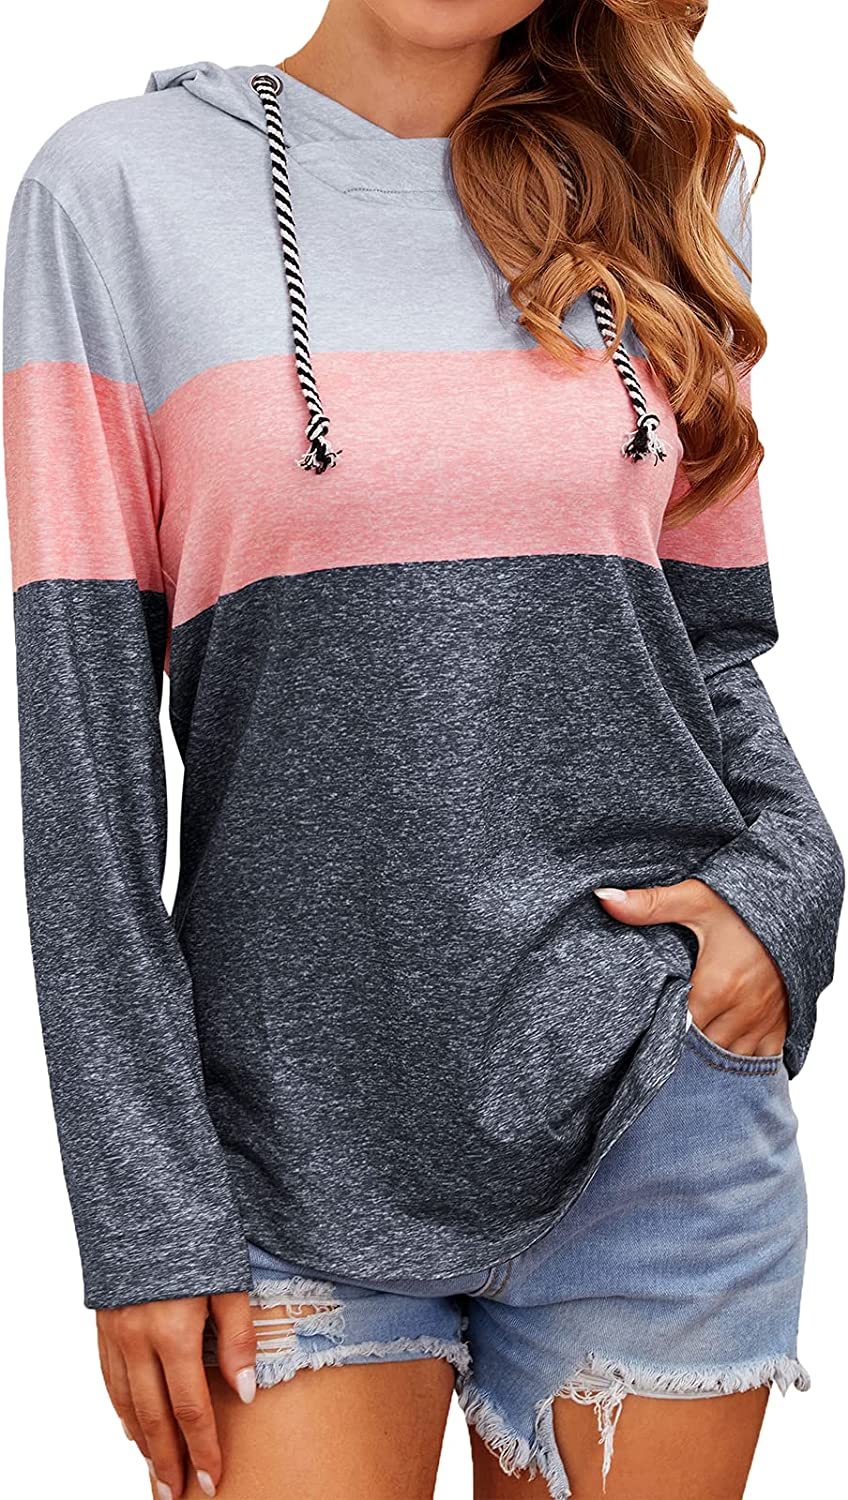 Women's Casual Tricolor Hoodies Color Block Striped Pullover Hoodie Tops with Drawstring Sweatshirts